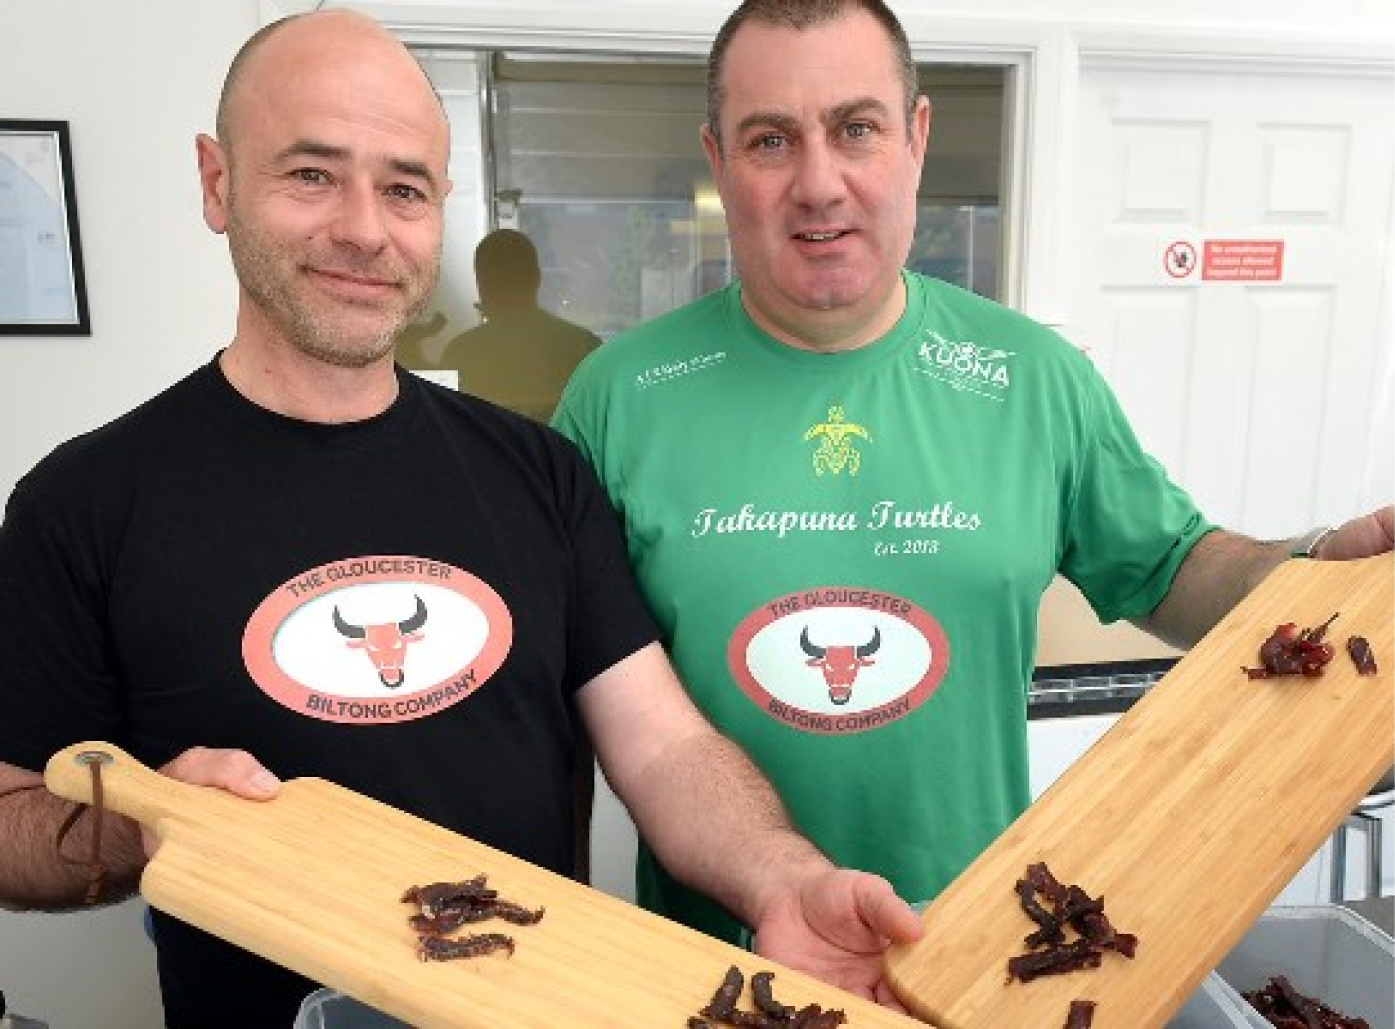 The Gloucester Biltong Company: How is their biltong made